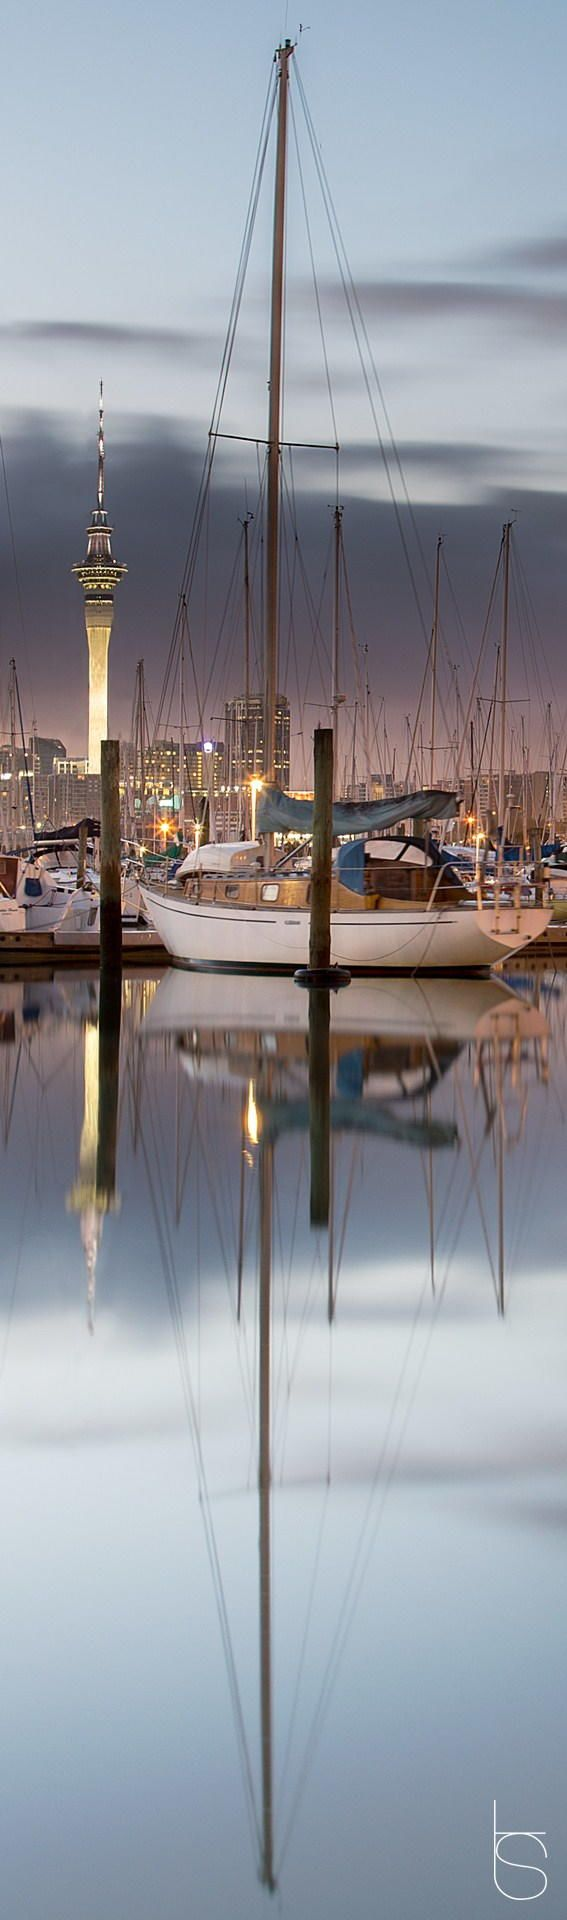 Yacht, sunrise over Sky Tower taken in Westhaven Marina, Auckland, New Zealand.  Photo by Tomas Stehlik